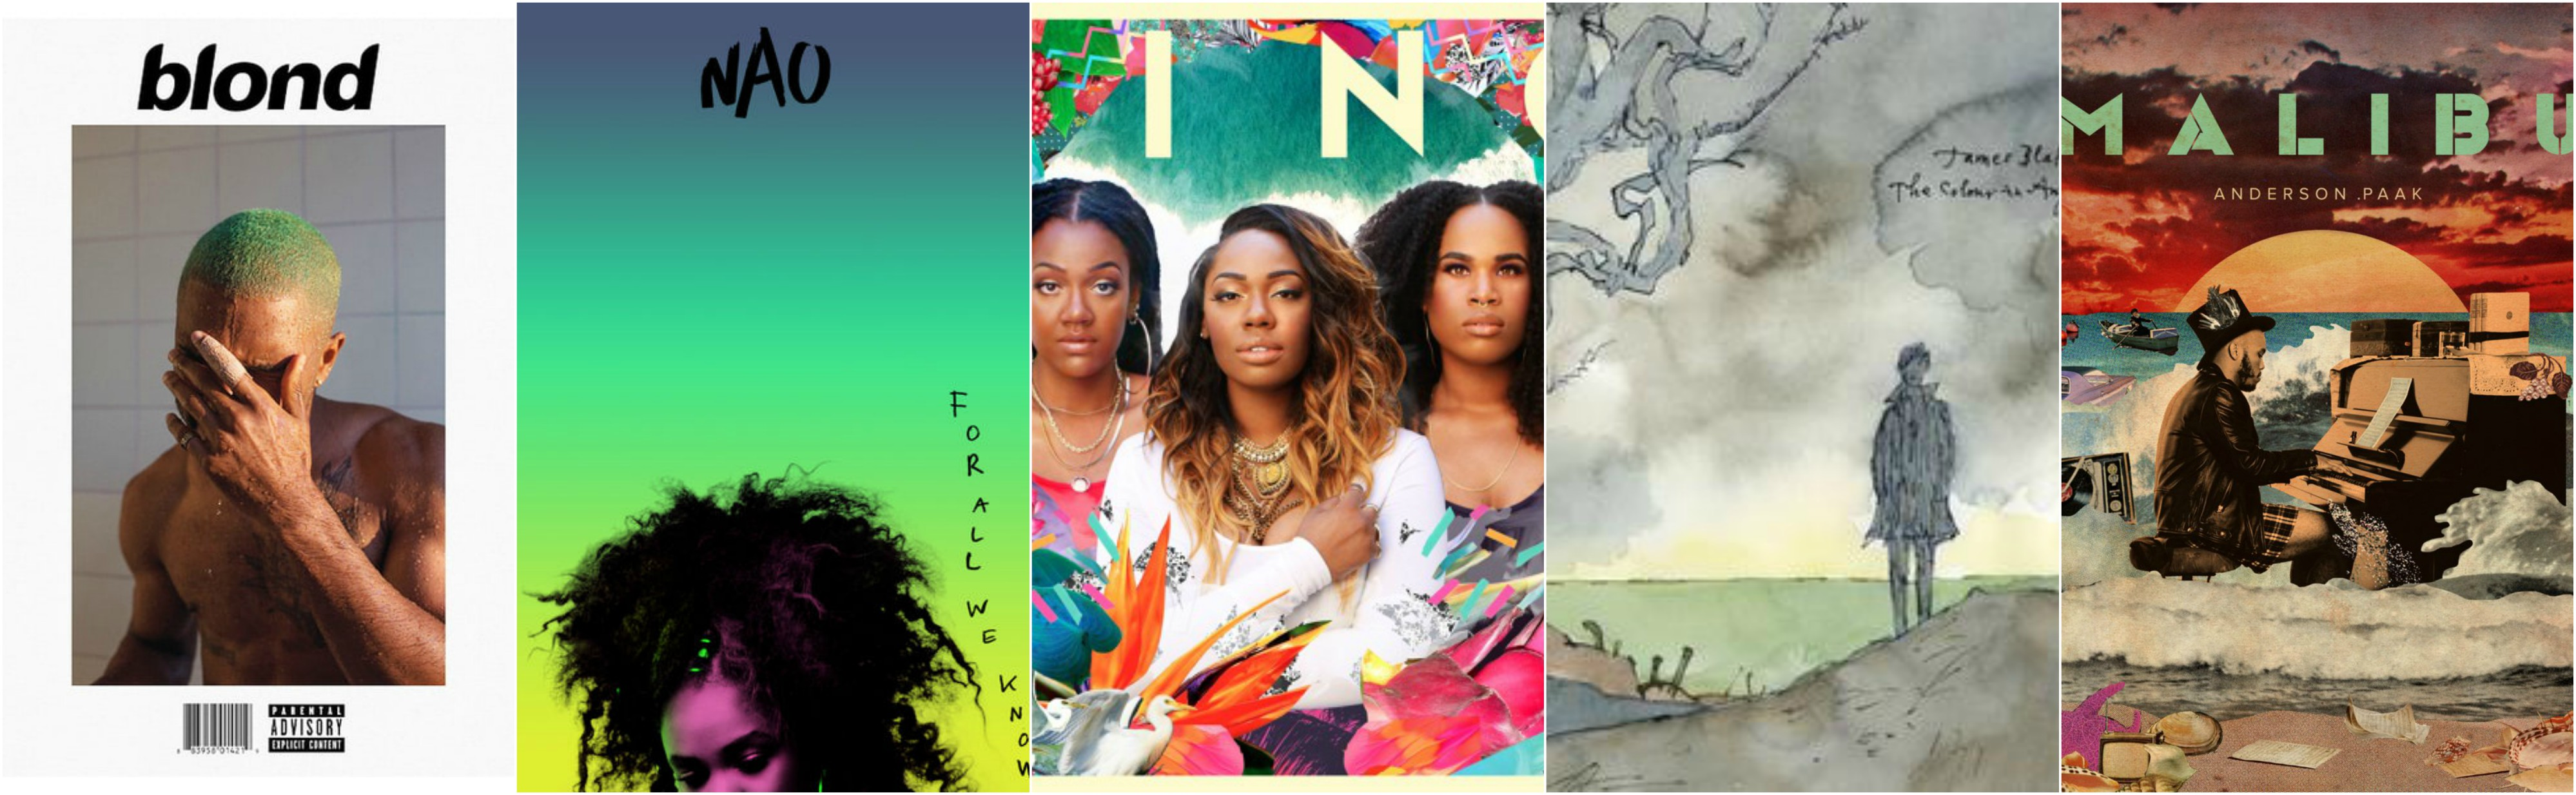 The 18 Most Underrated Albums of 2016